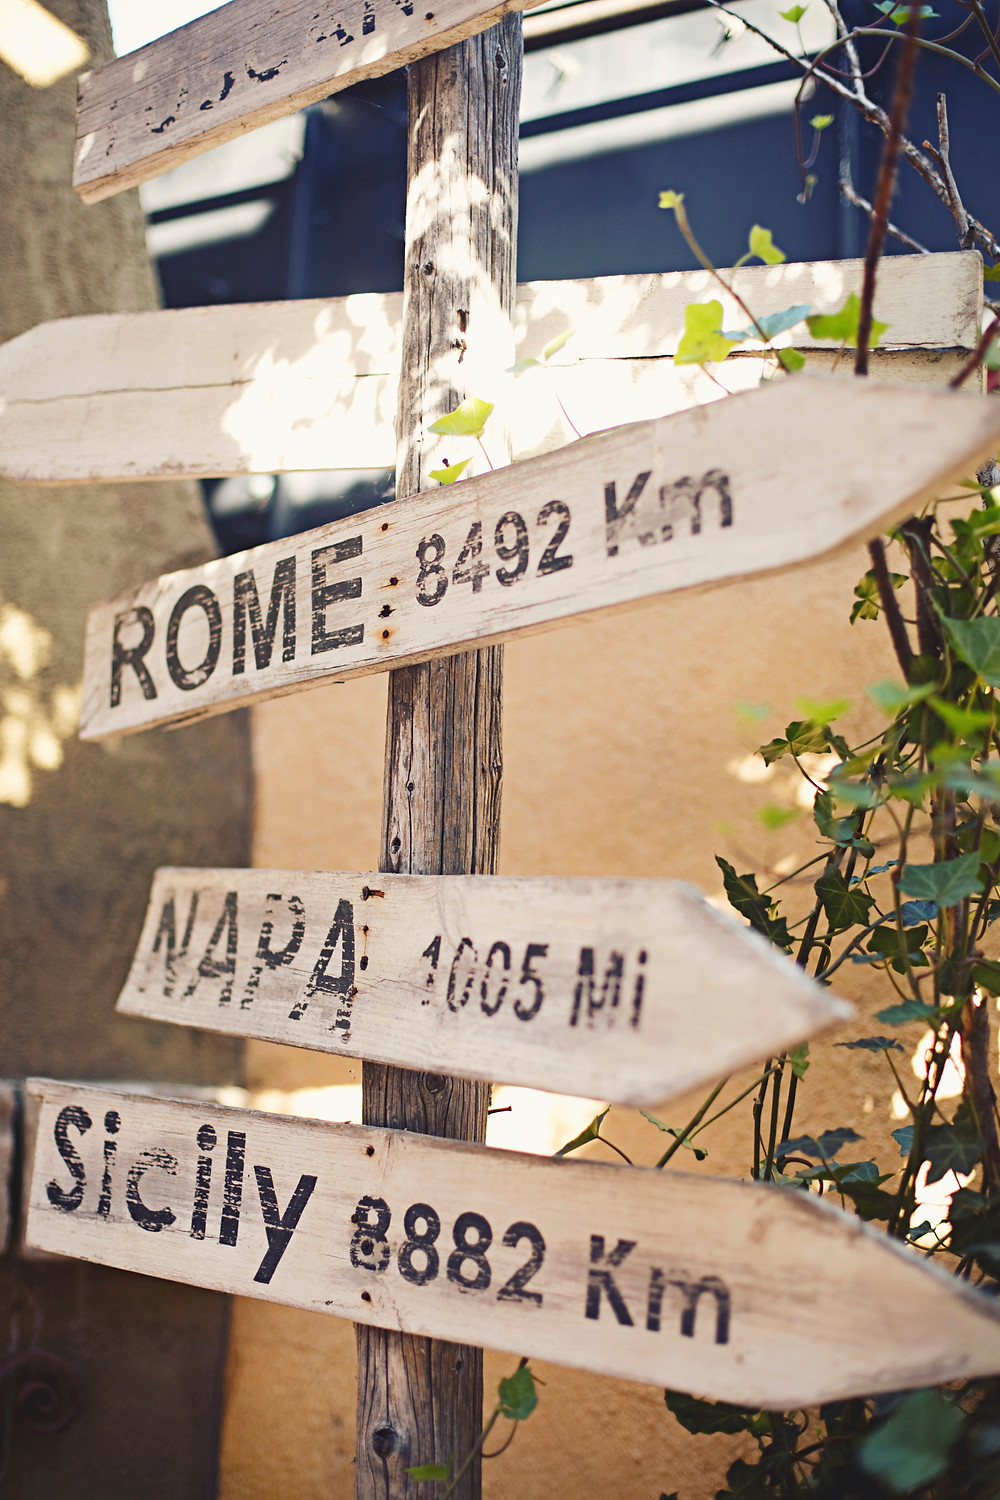 Some wooden signs at a rustic Italian inspired wedding with Italian city names written on them.